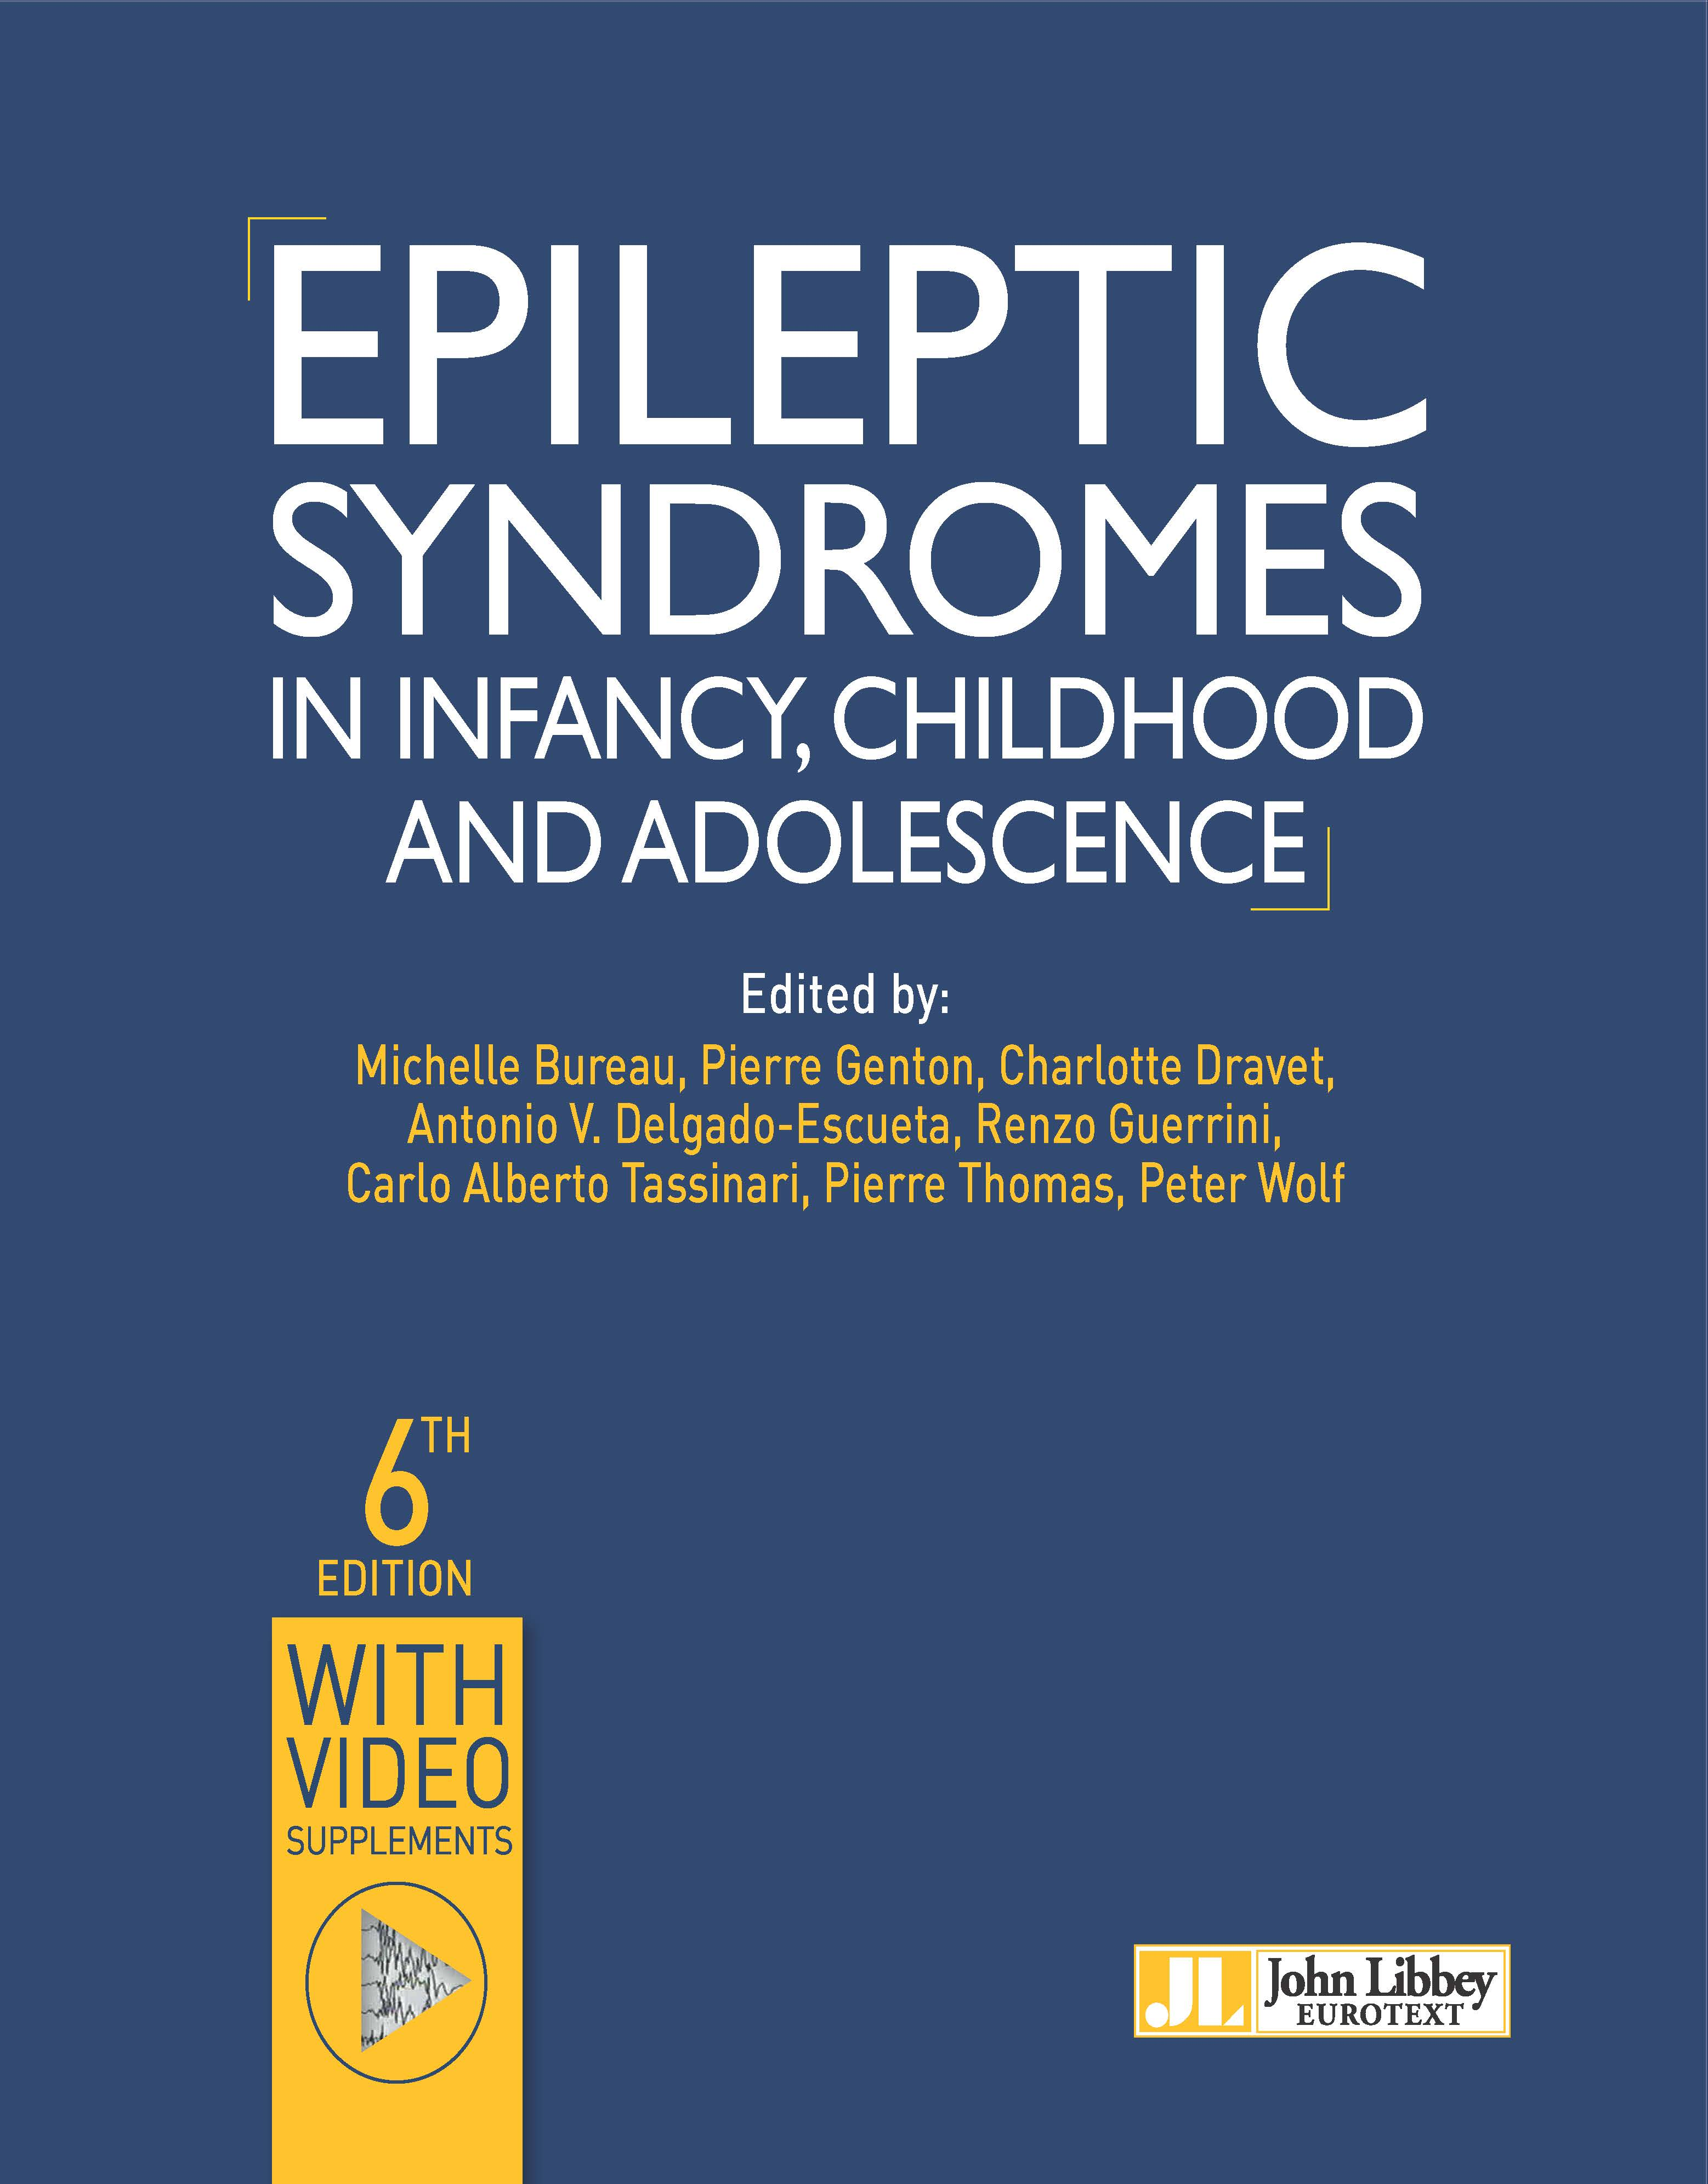 Epileptic syndromes